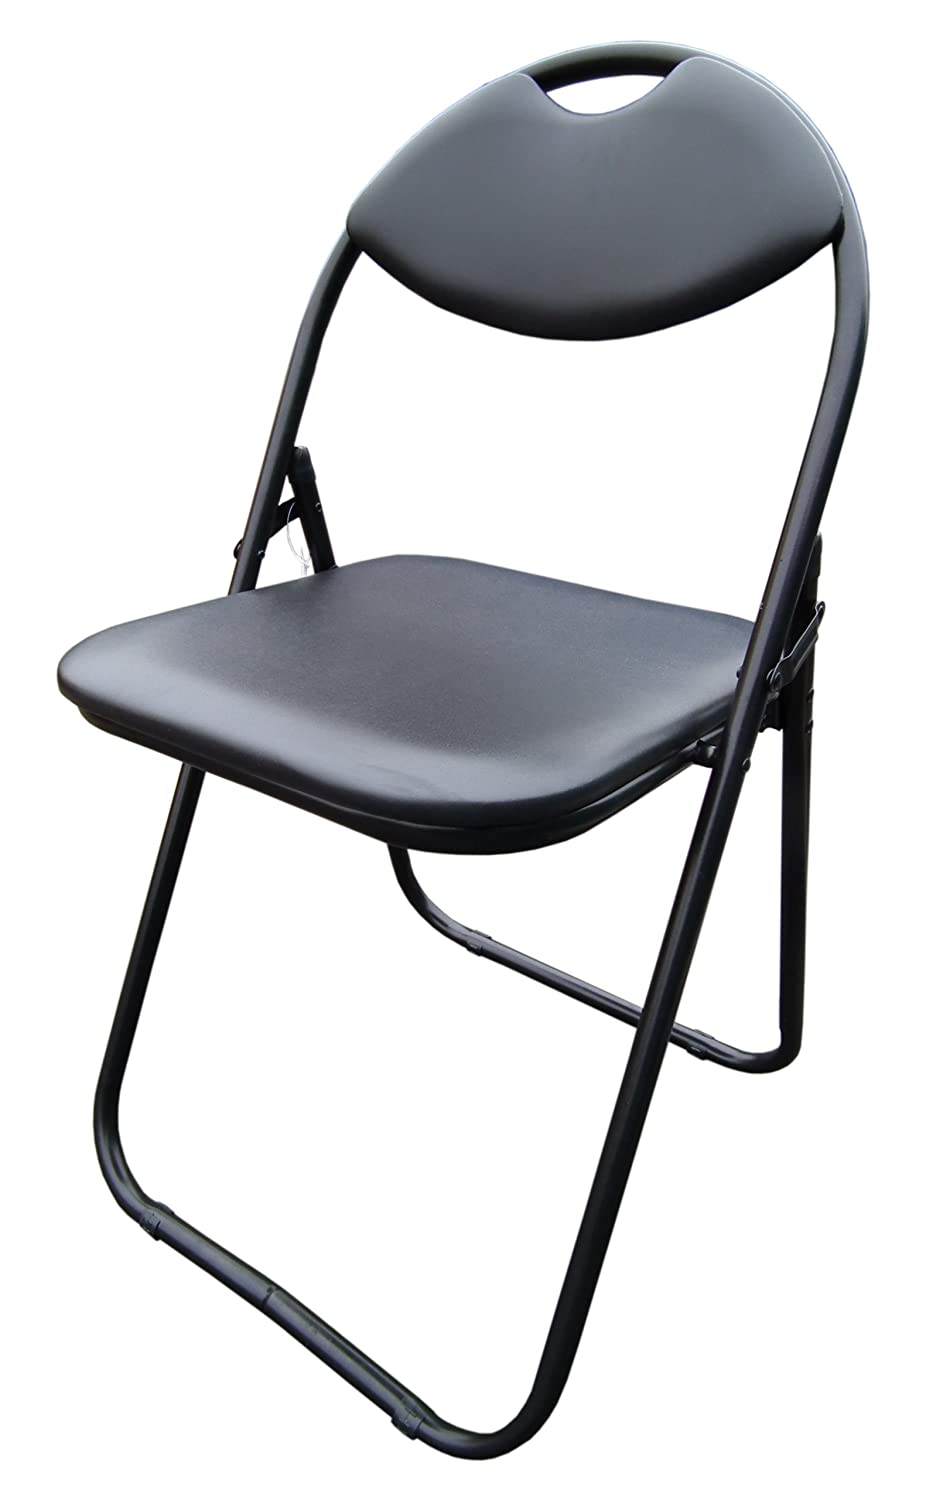 Ordinaire Black Faux Leather Folding Chair Padded Seat U0026 Back Rest Computer Office  Chairs: Amazon.co.uk: Kitchen U0026 Home